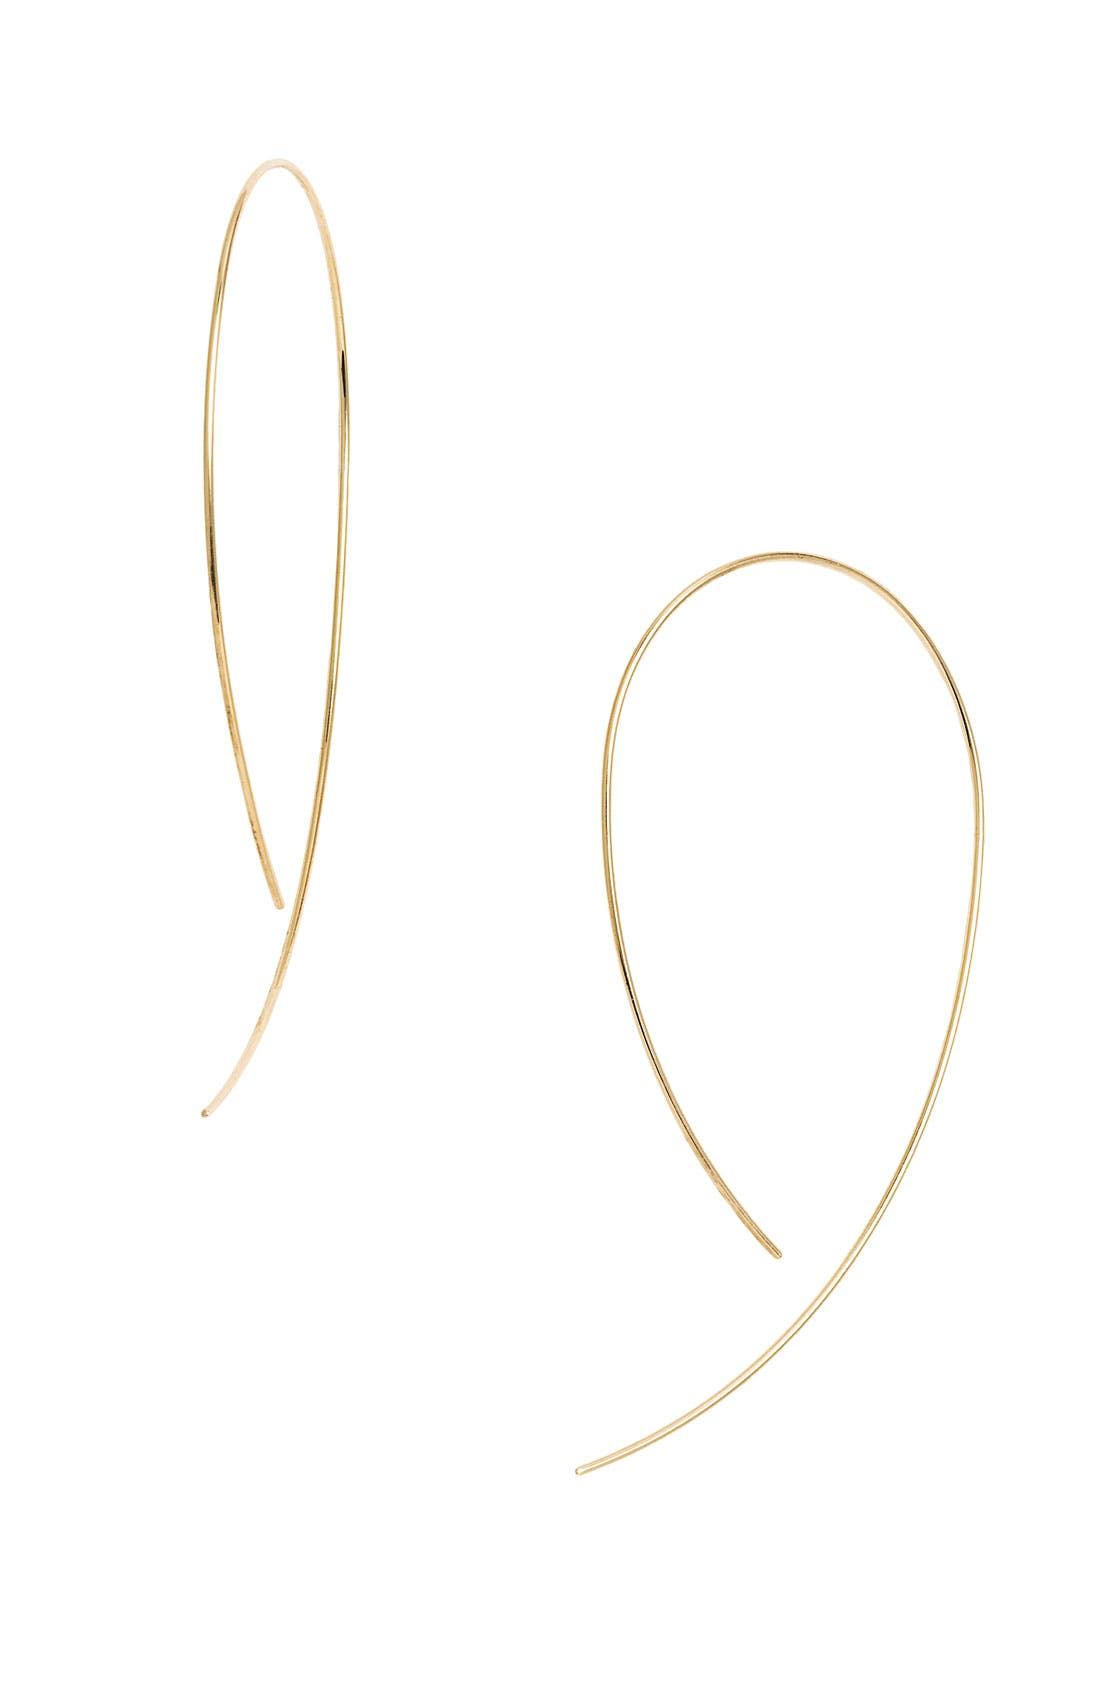 'Hooked on Hoop' Earrings,                             Main thumbnail 1, color,                             YELLOW GOLD